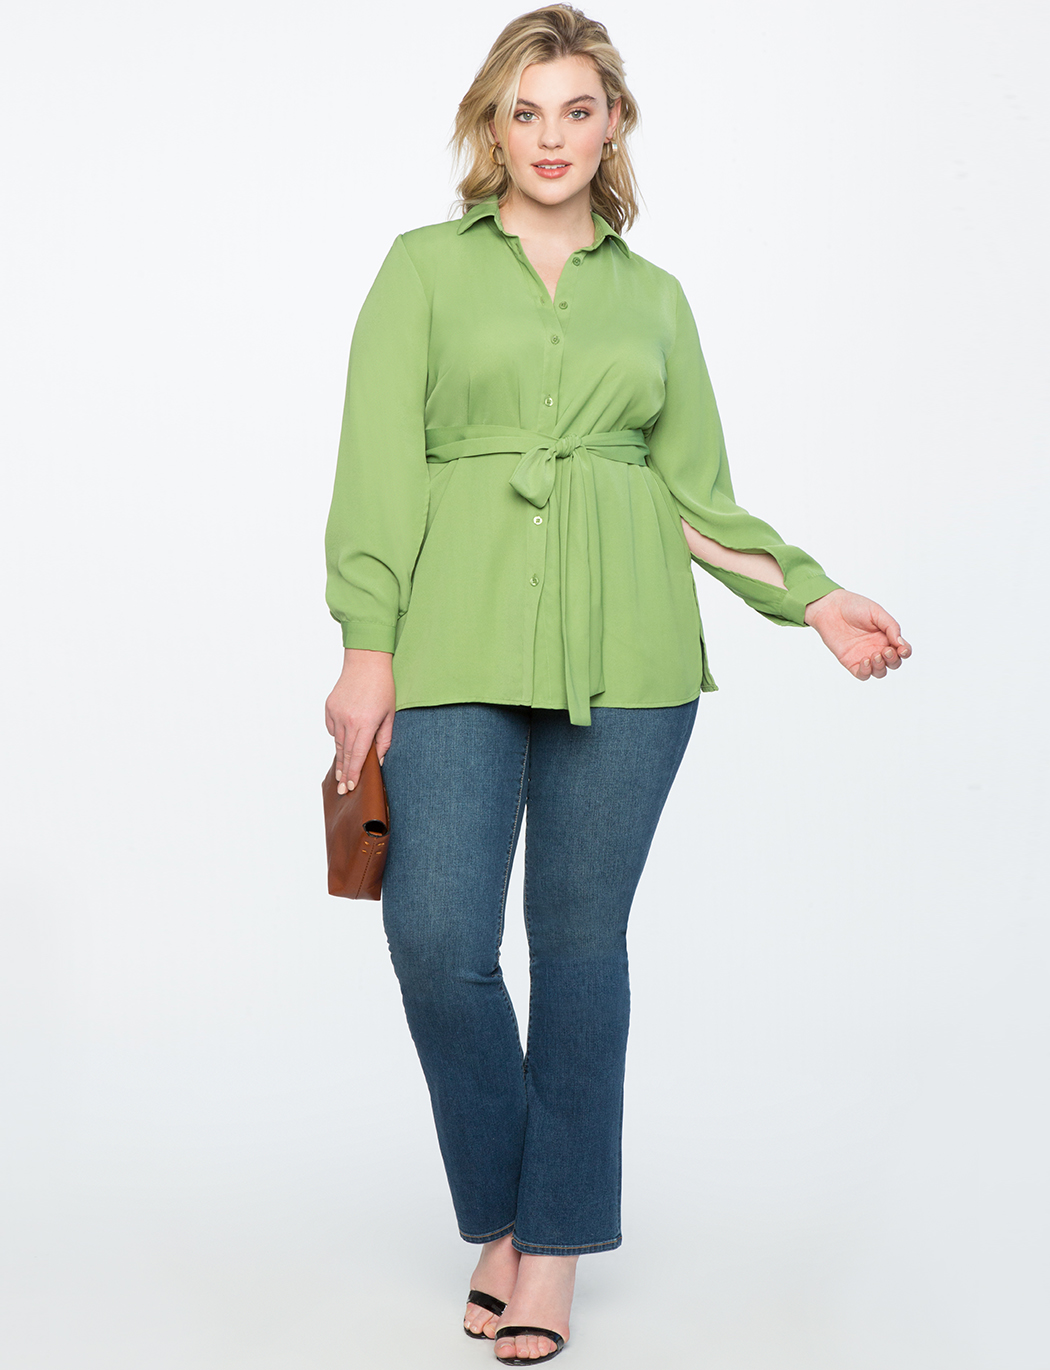 Split Sleeve Tunic with Tie Waist